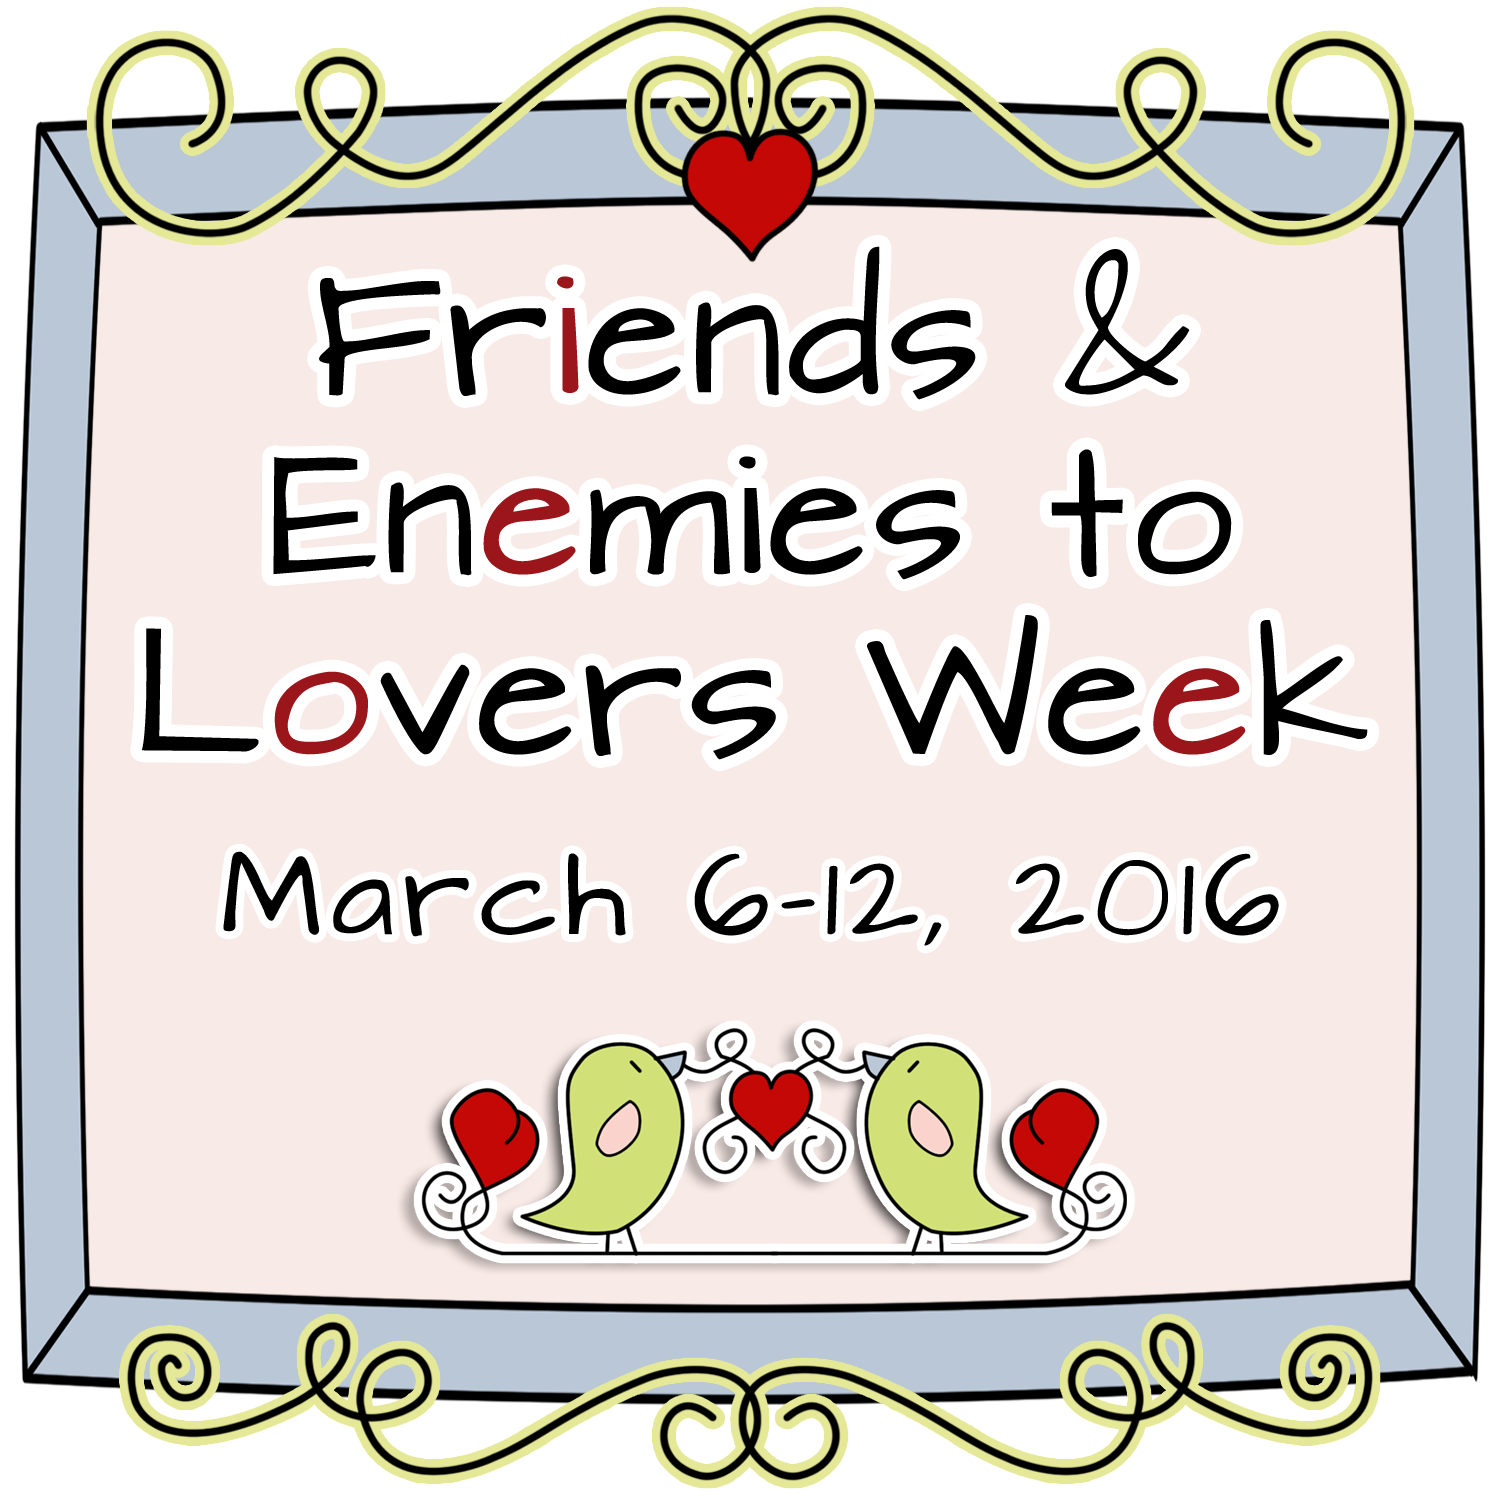 Magician clipart predilection. Friends enemies to lovers